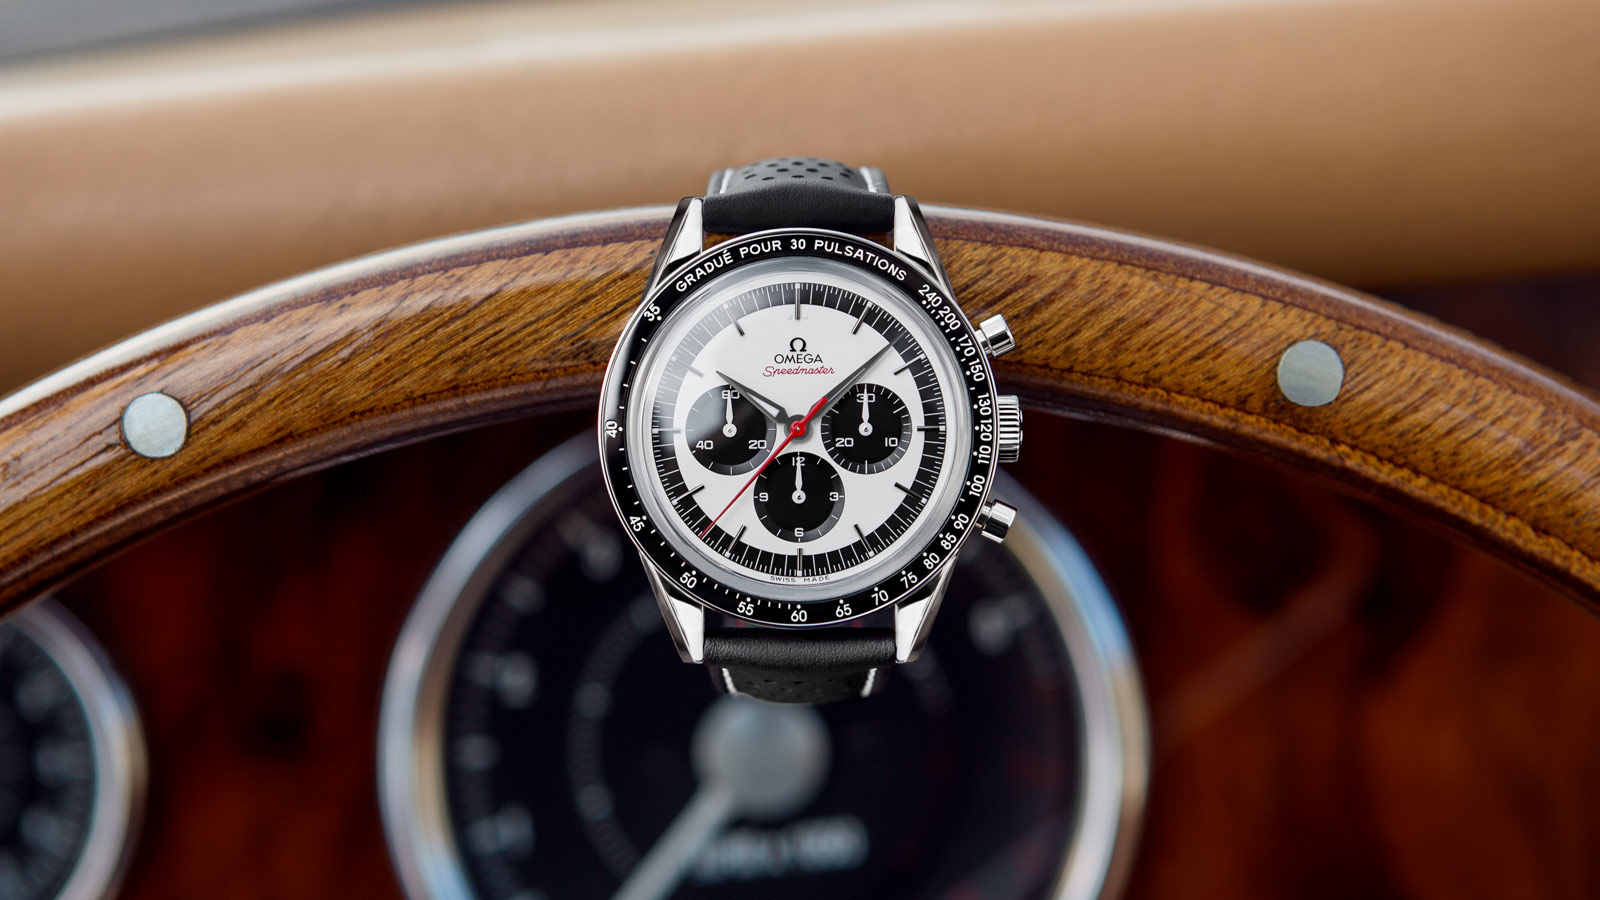 Speedmaster Moonwatch Moonwatch Chronograph 39,7 mm - 311.32.40.30.02.001 - Visualizzare 1